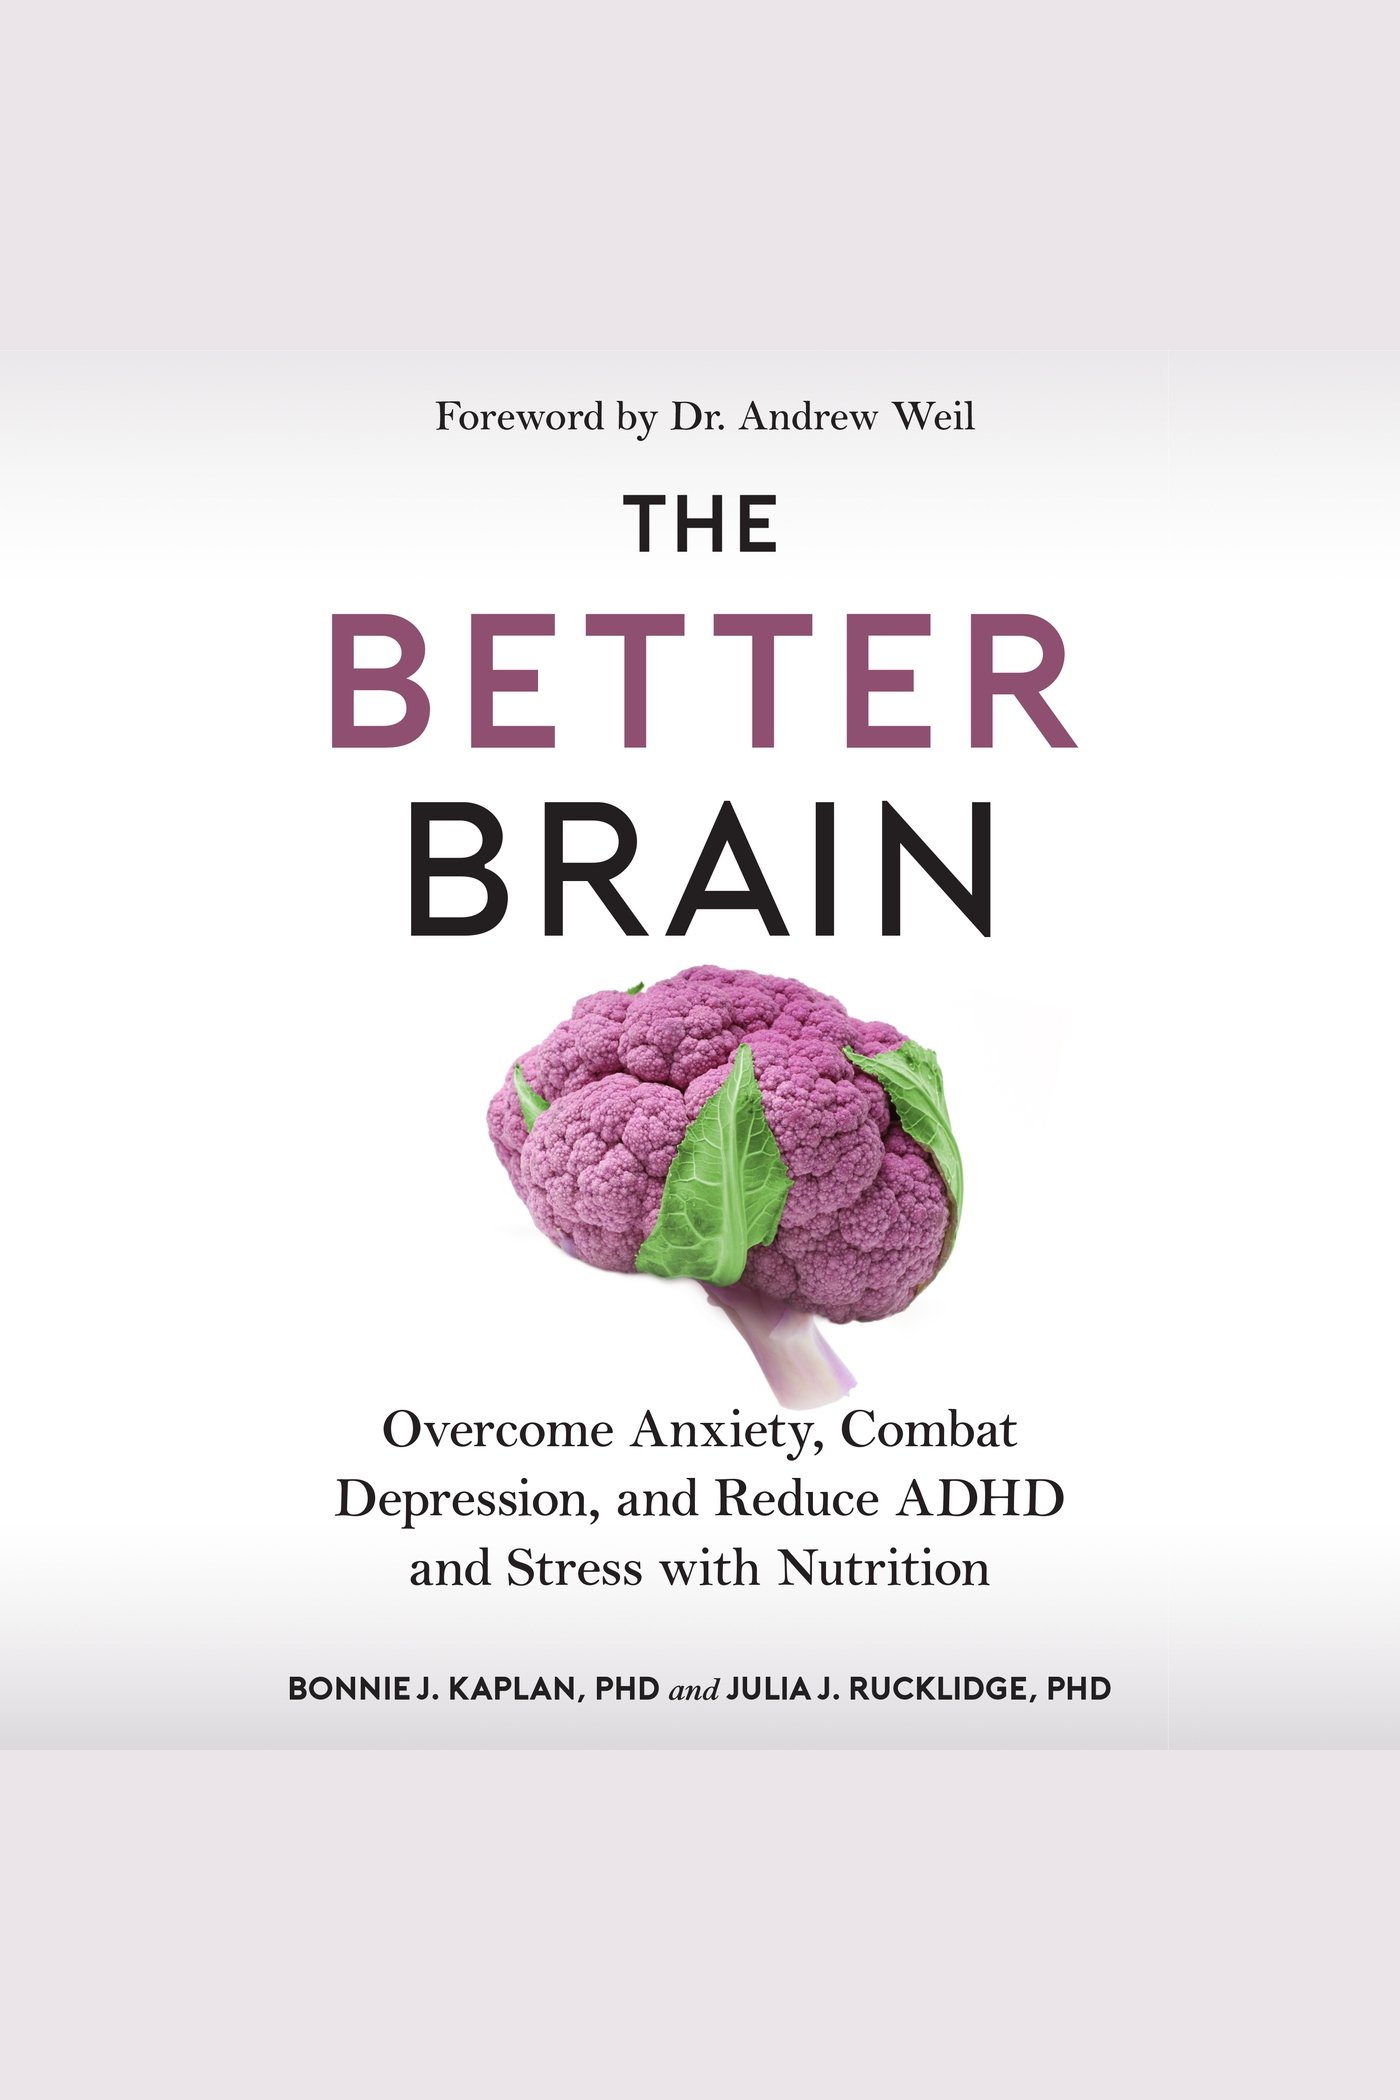 Better Brain, The Overcome Anxiety, Combat Depression, and Reduce ADHD and Stress with Nutrition